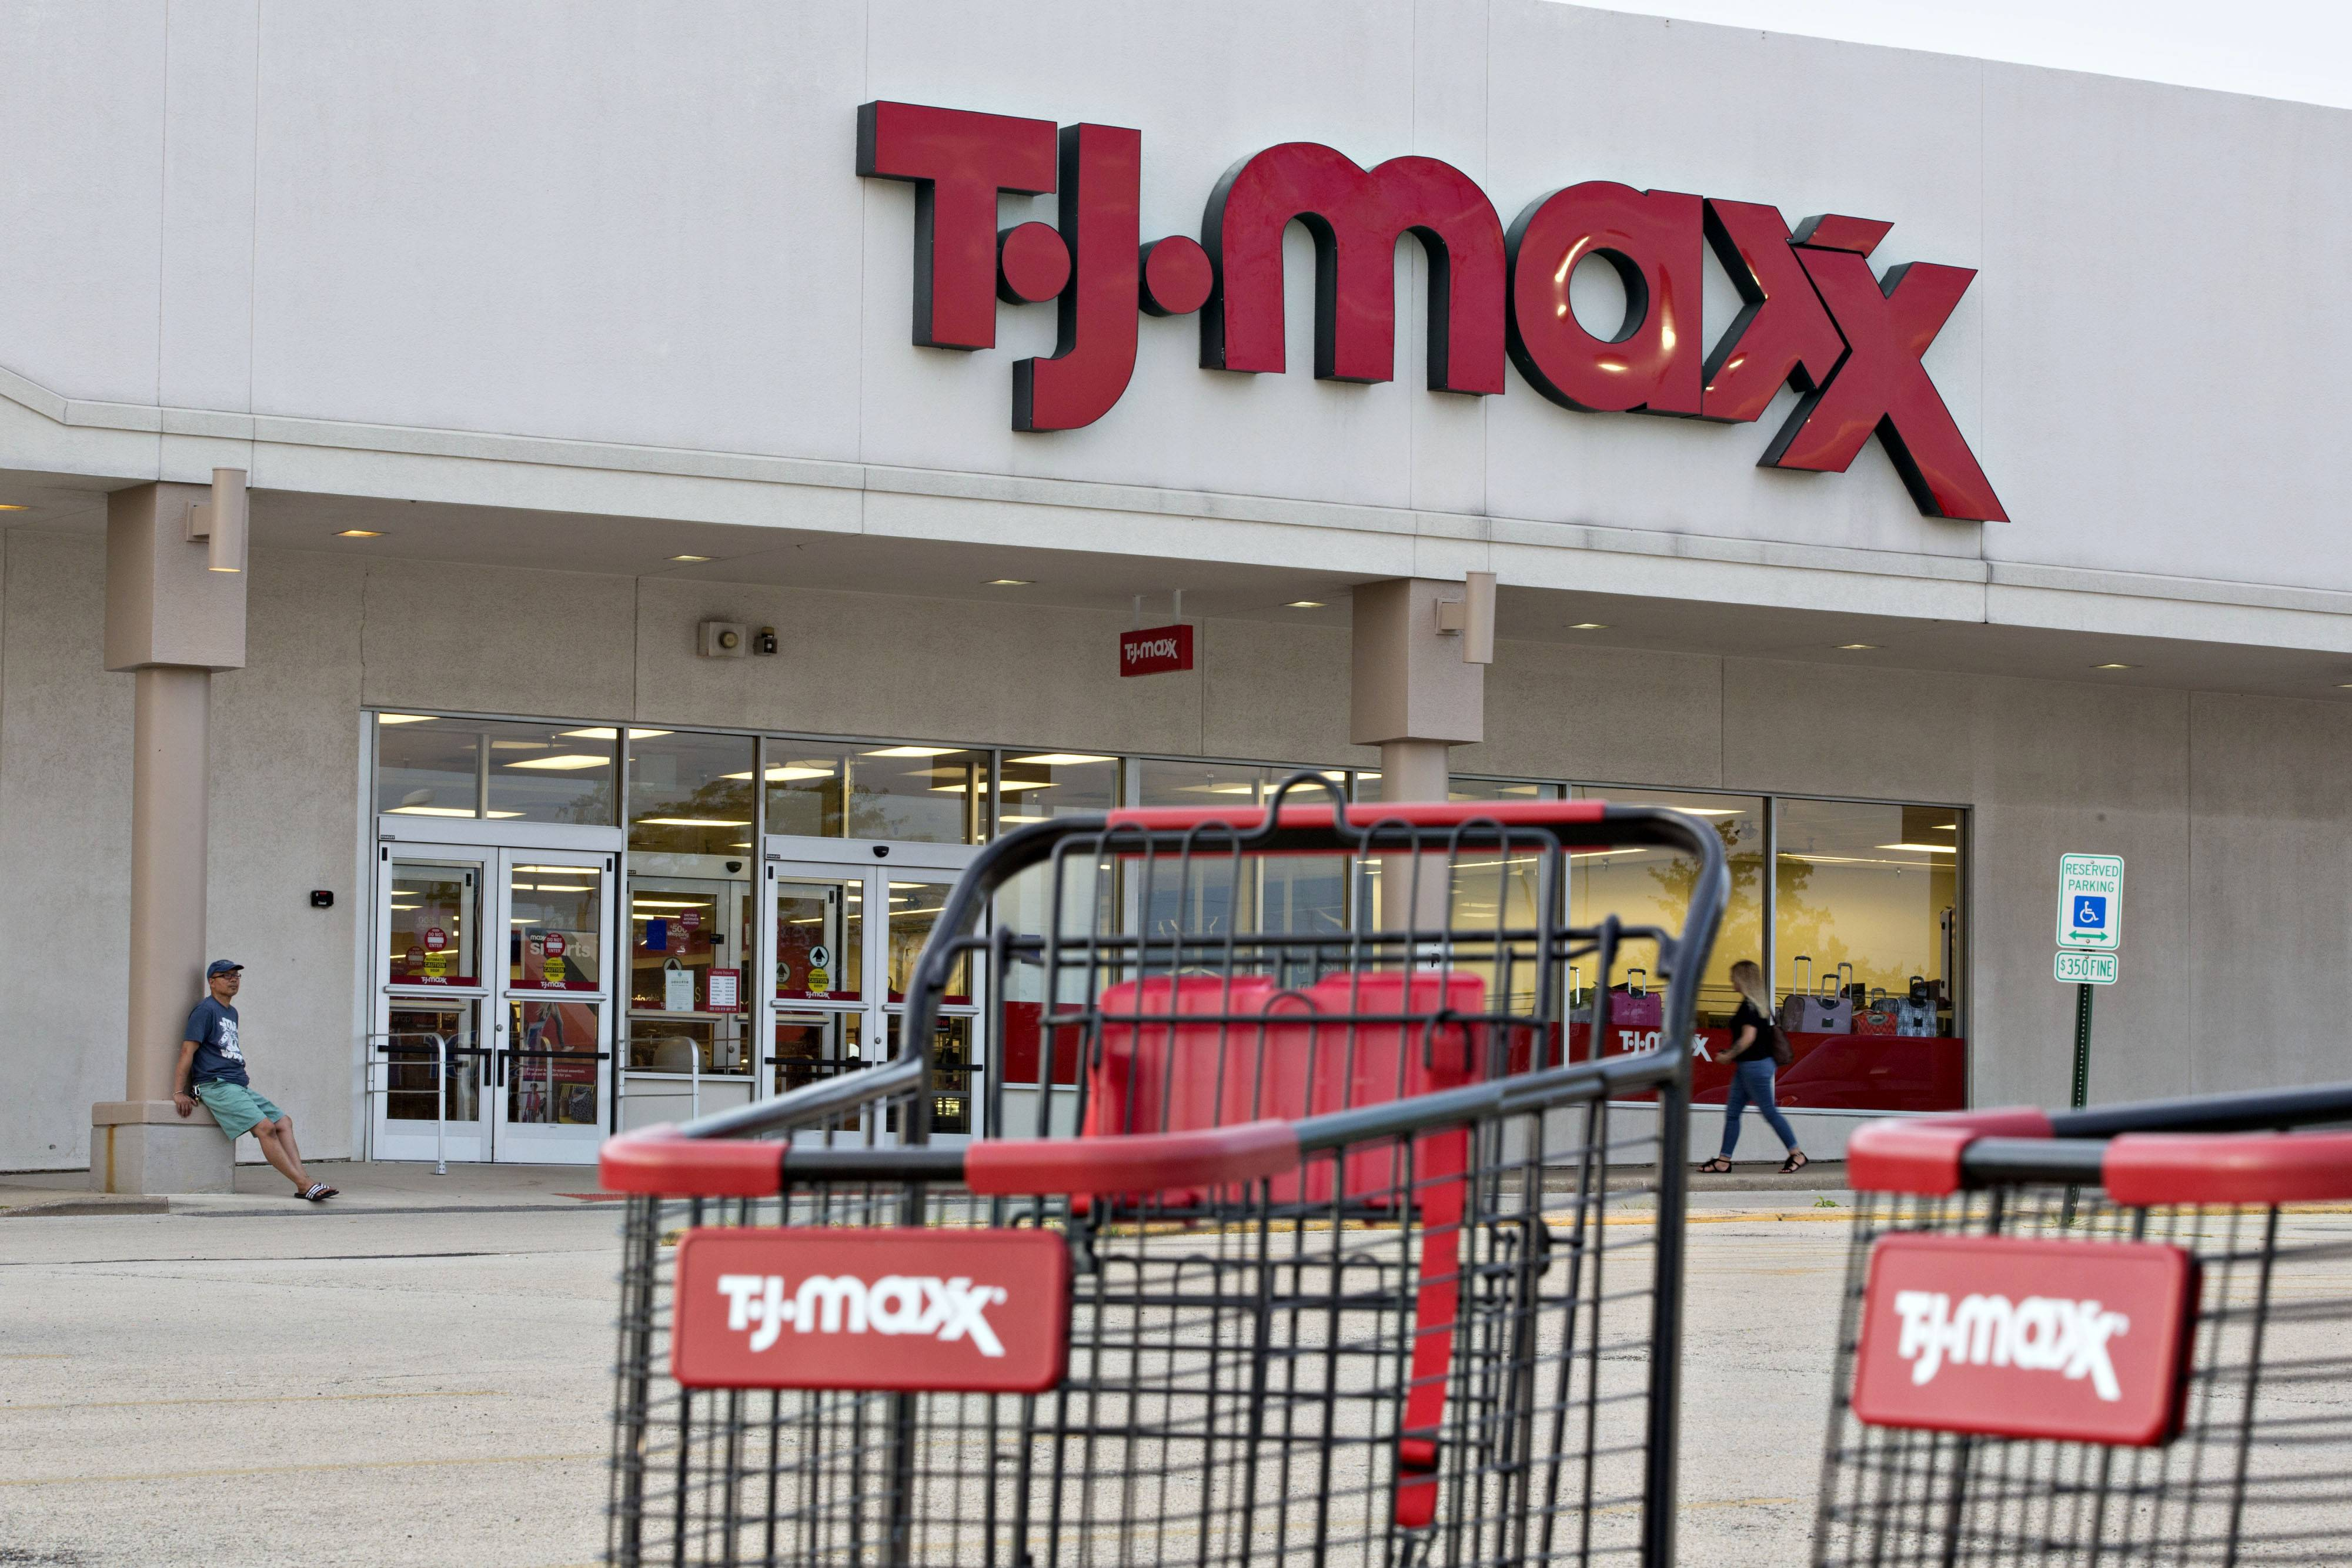 Shop on Wednesday Mornings T.J. Maxx stores typically receive new merchandise shipments three to five days a week, but Wednesday is usually the day they mark everything down. Get there in the morning to ensure you'll have access to the most robust selection.